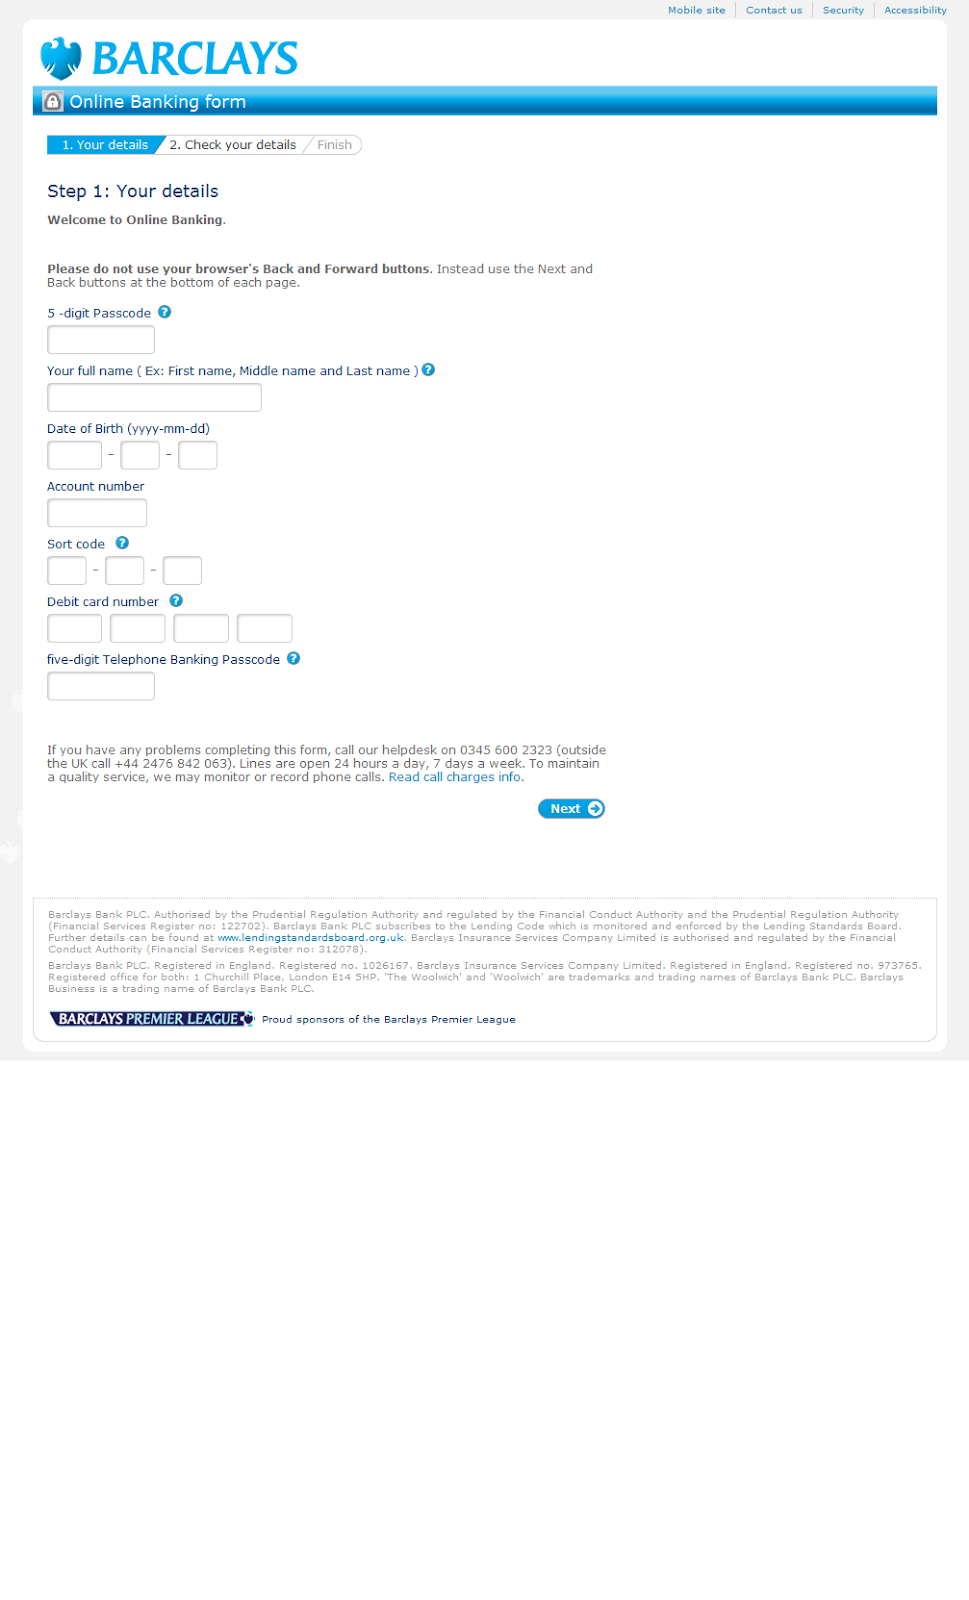 barclays online dating